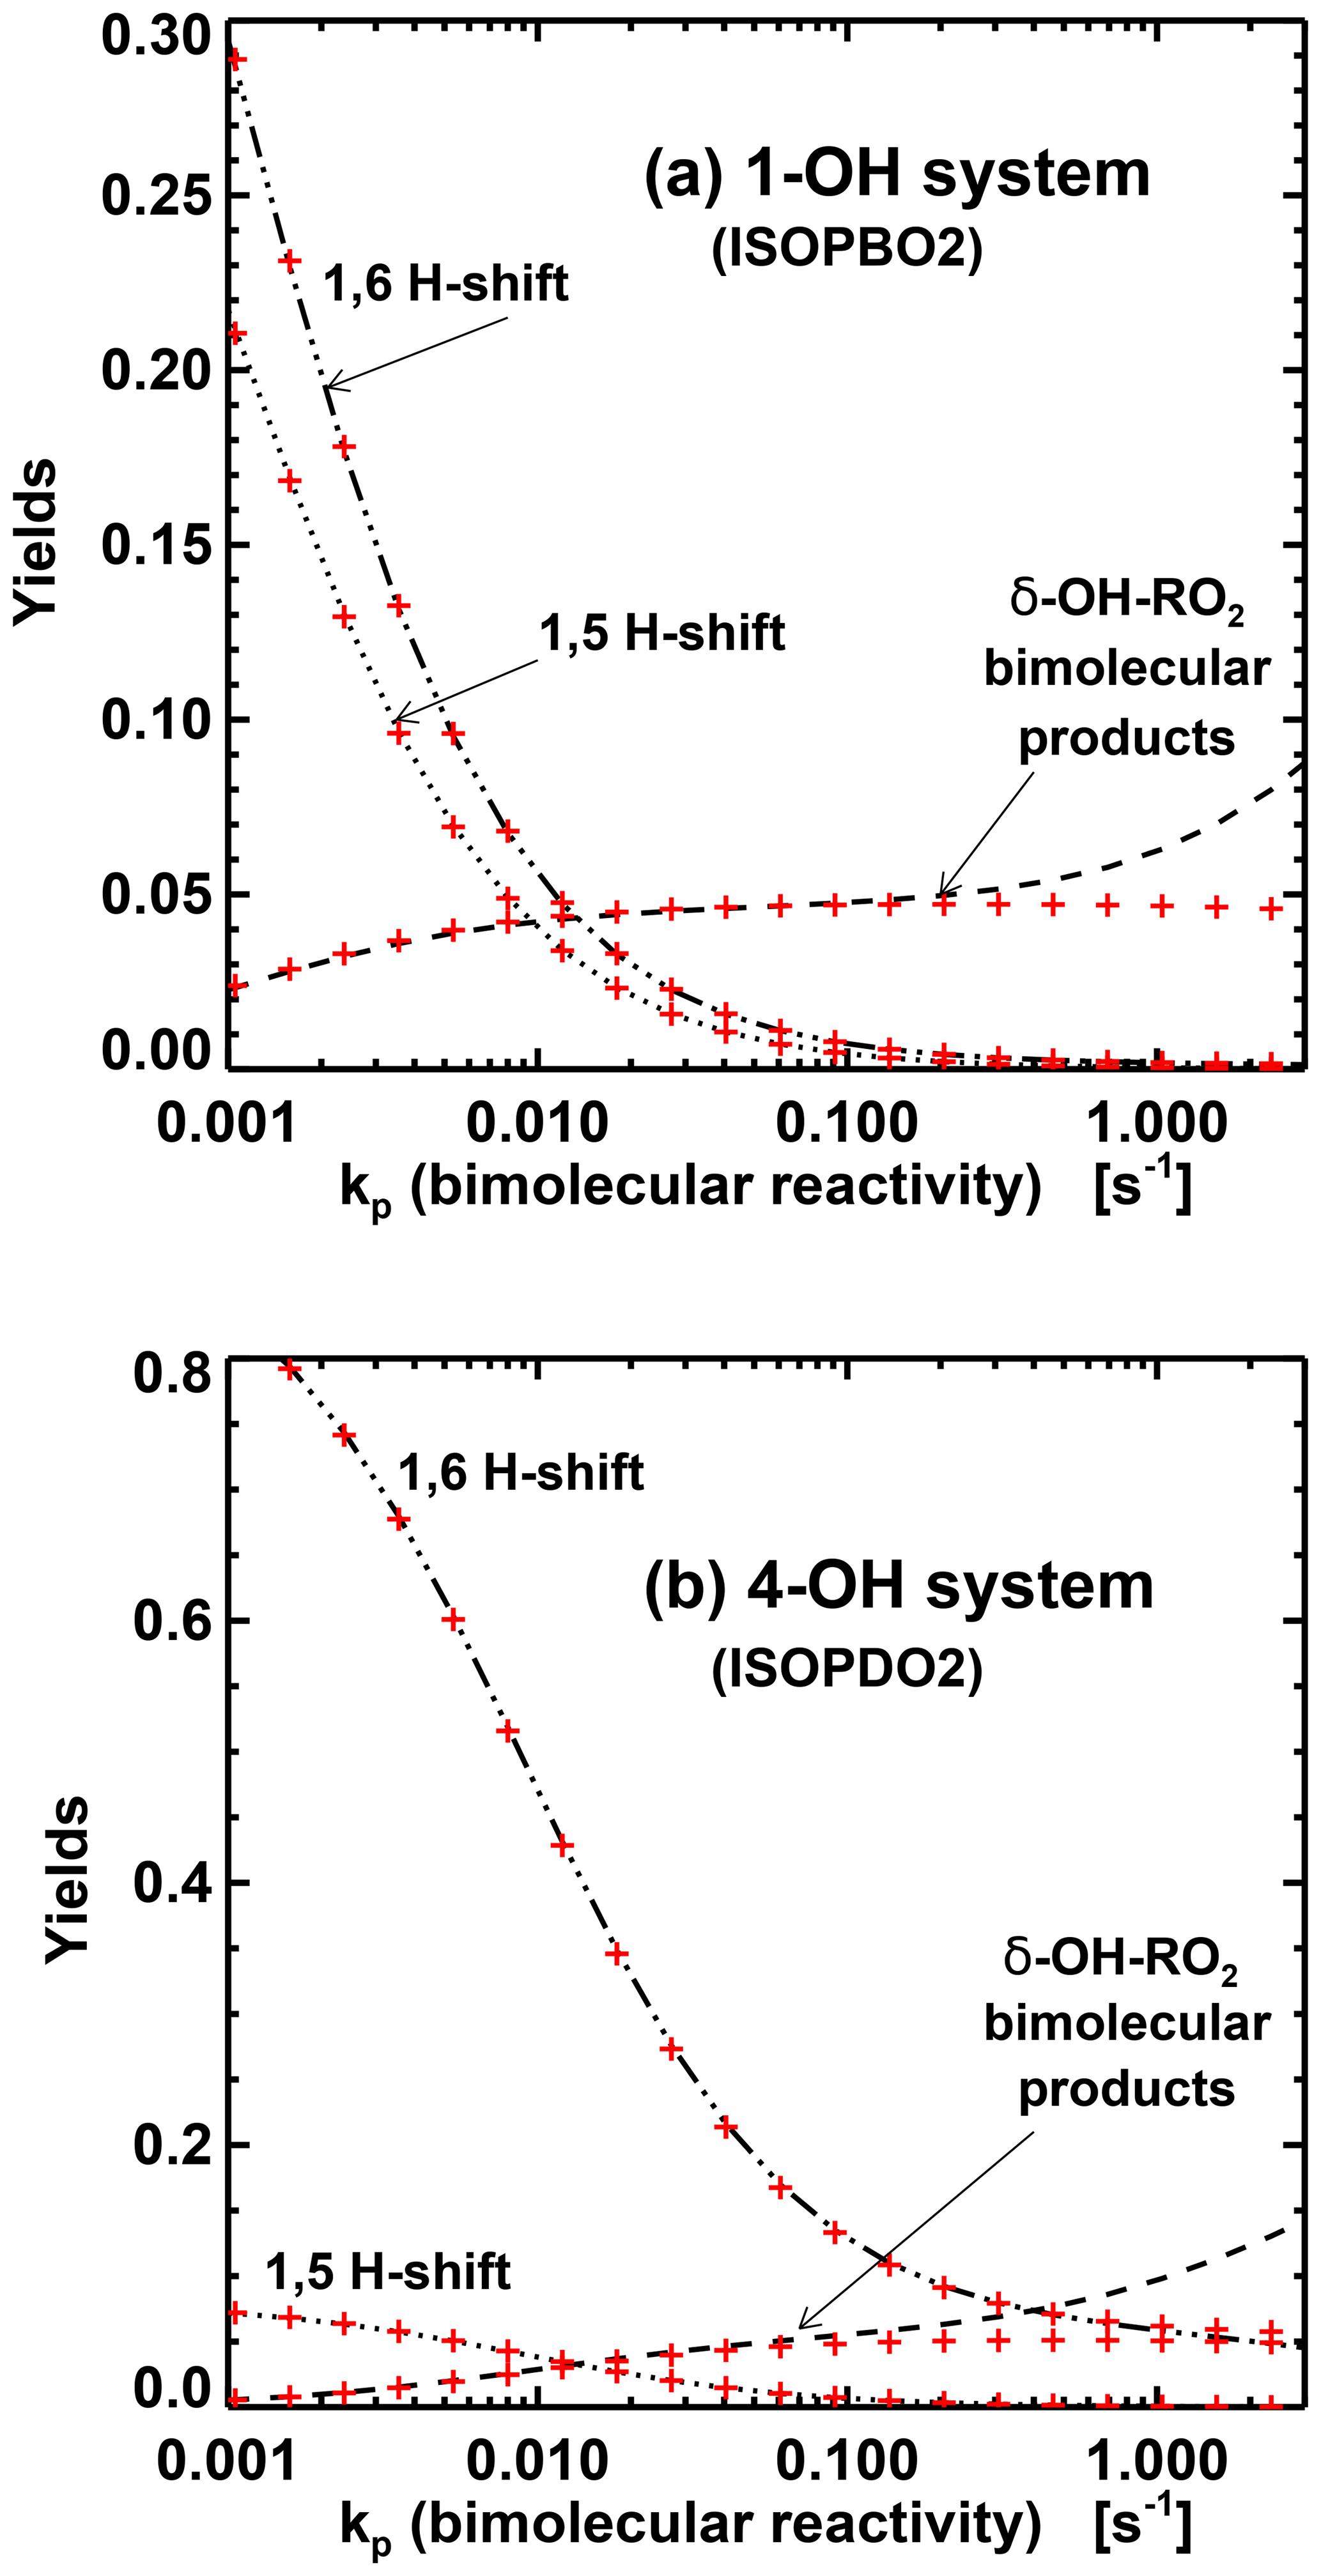 GMD - Chemistry and deposition in the Model of Atmospheric